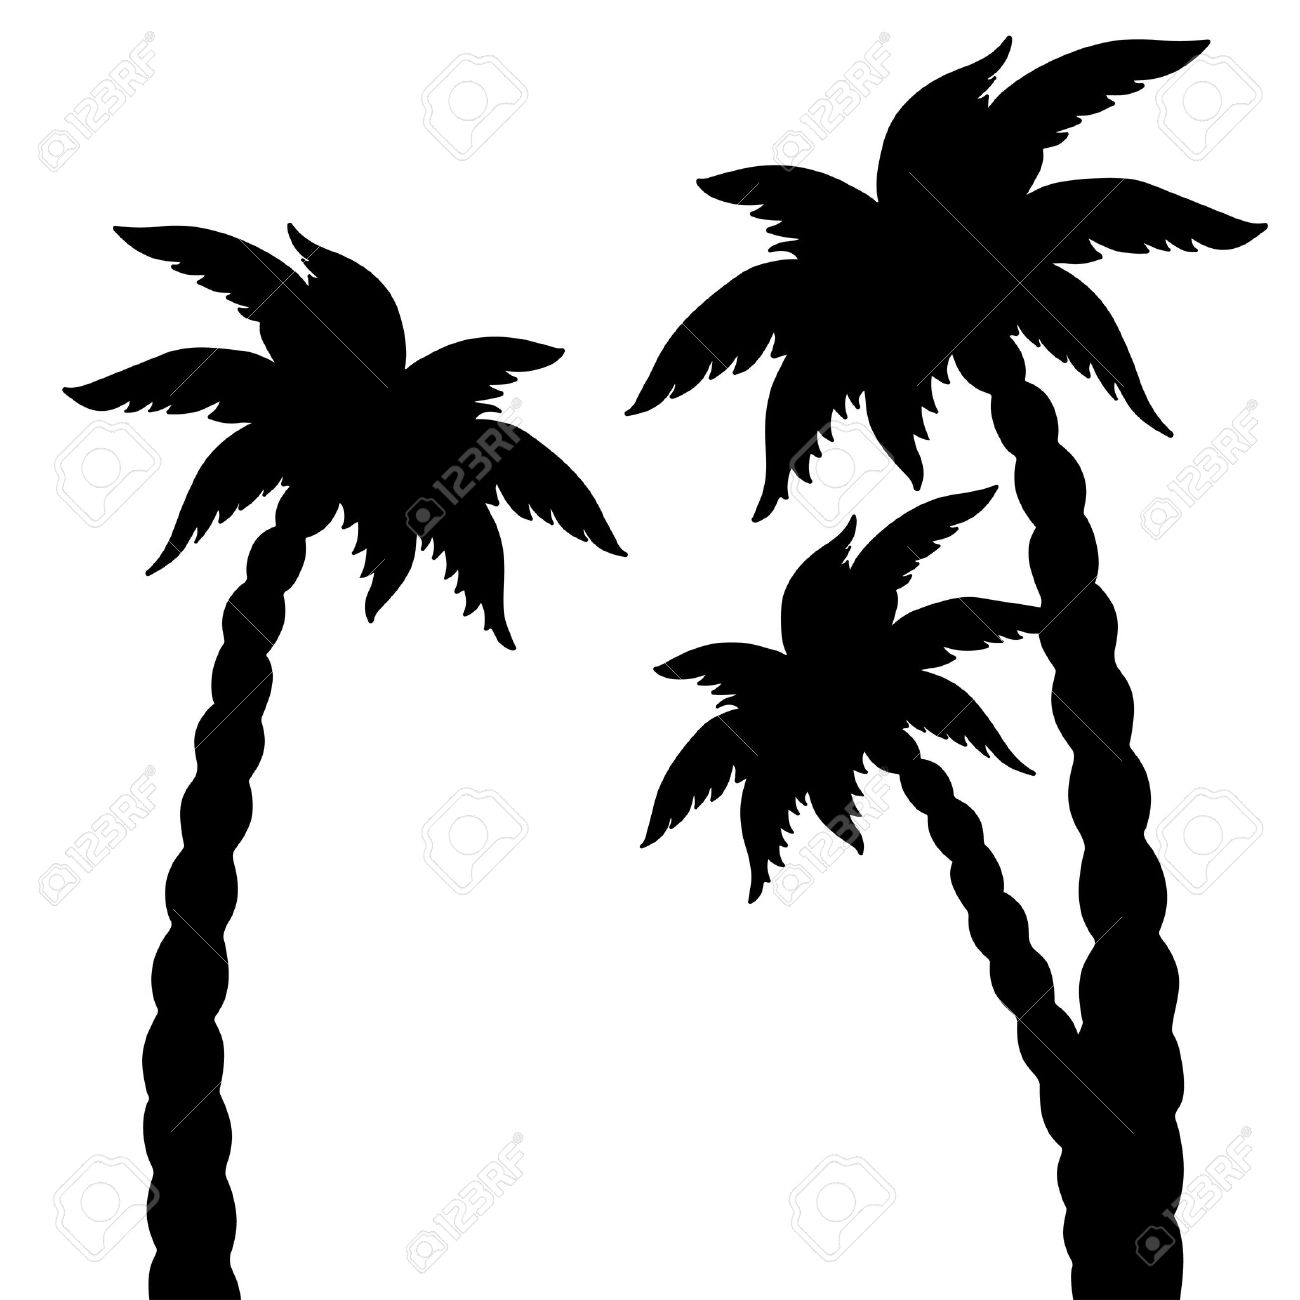 set coconut palms trees silhouettes isolated on white background rh 123rf com vector palm trees black and white vector palm trees black and white